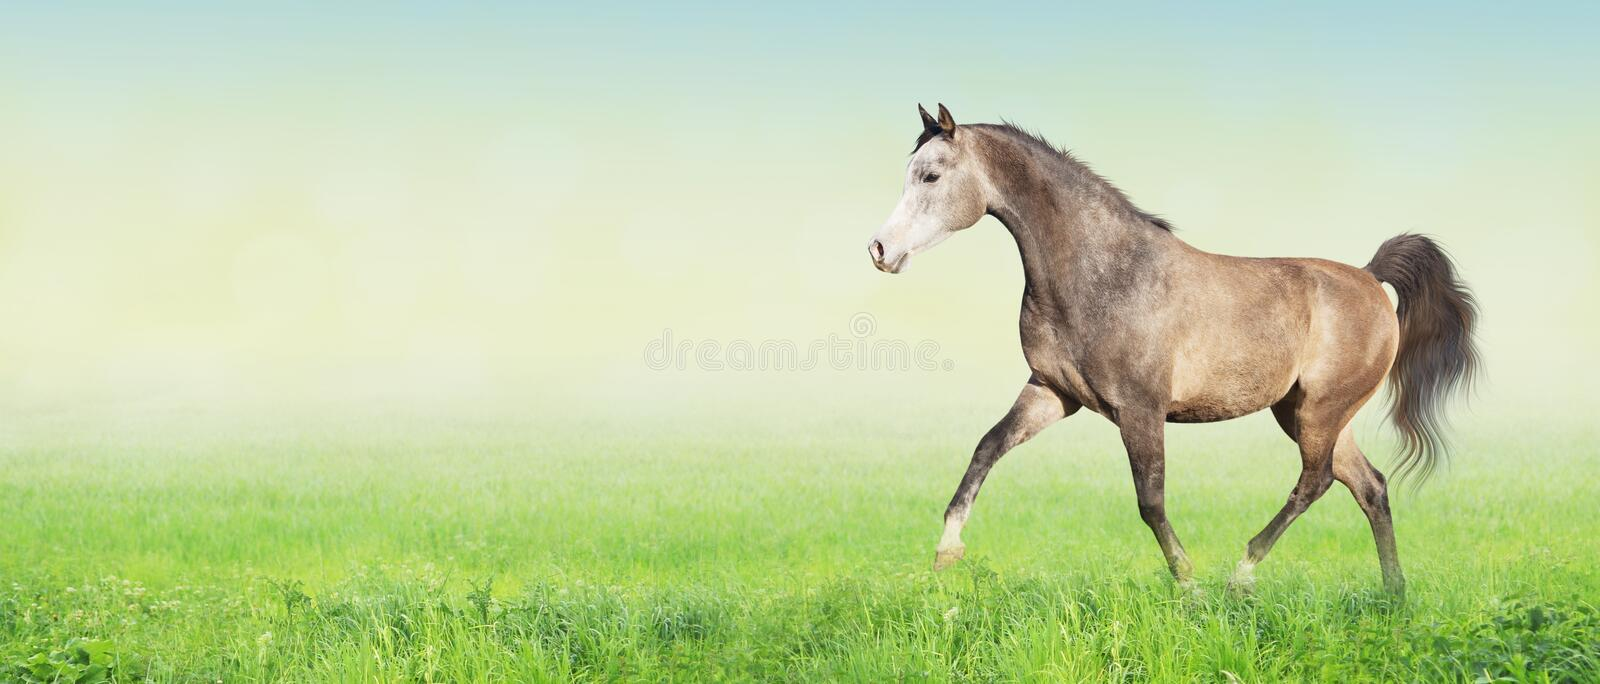 Arabian horse running trot on meadow,banner royalty free stock images